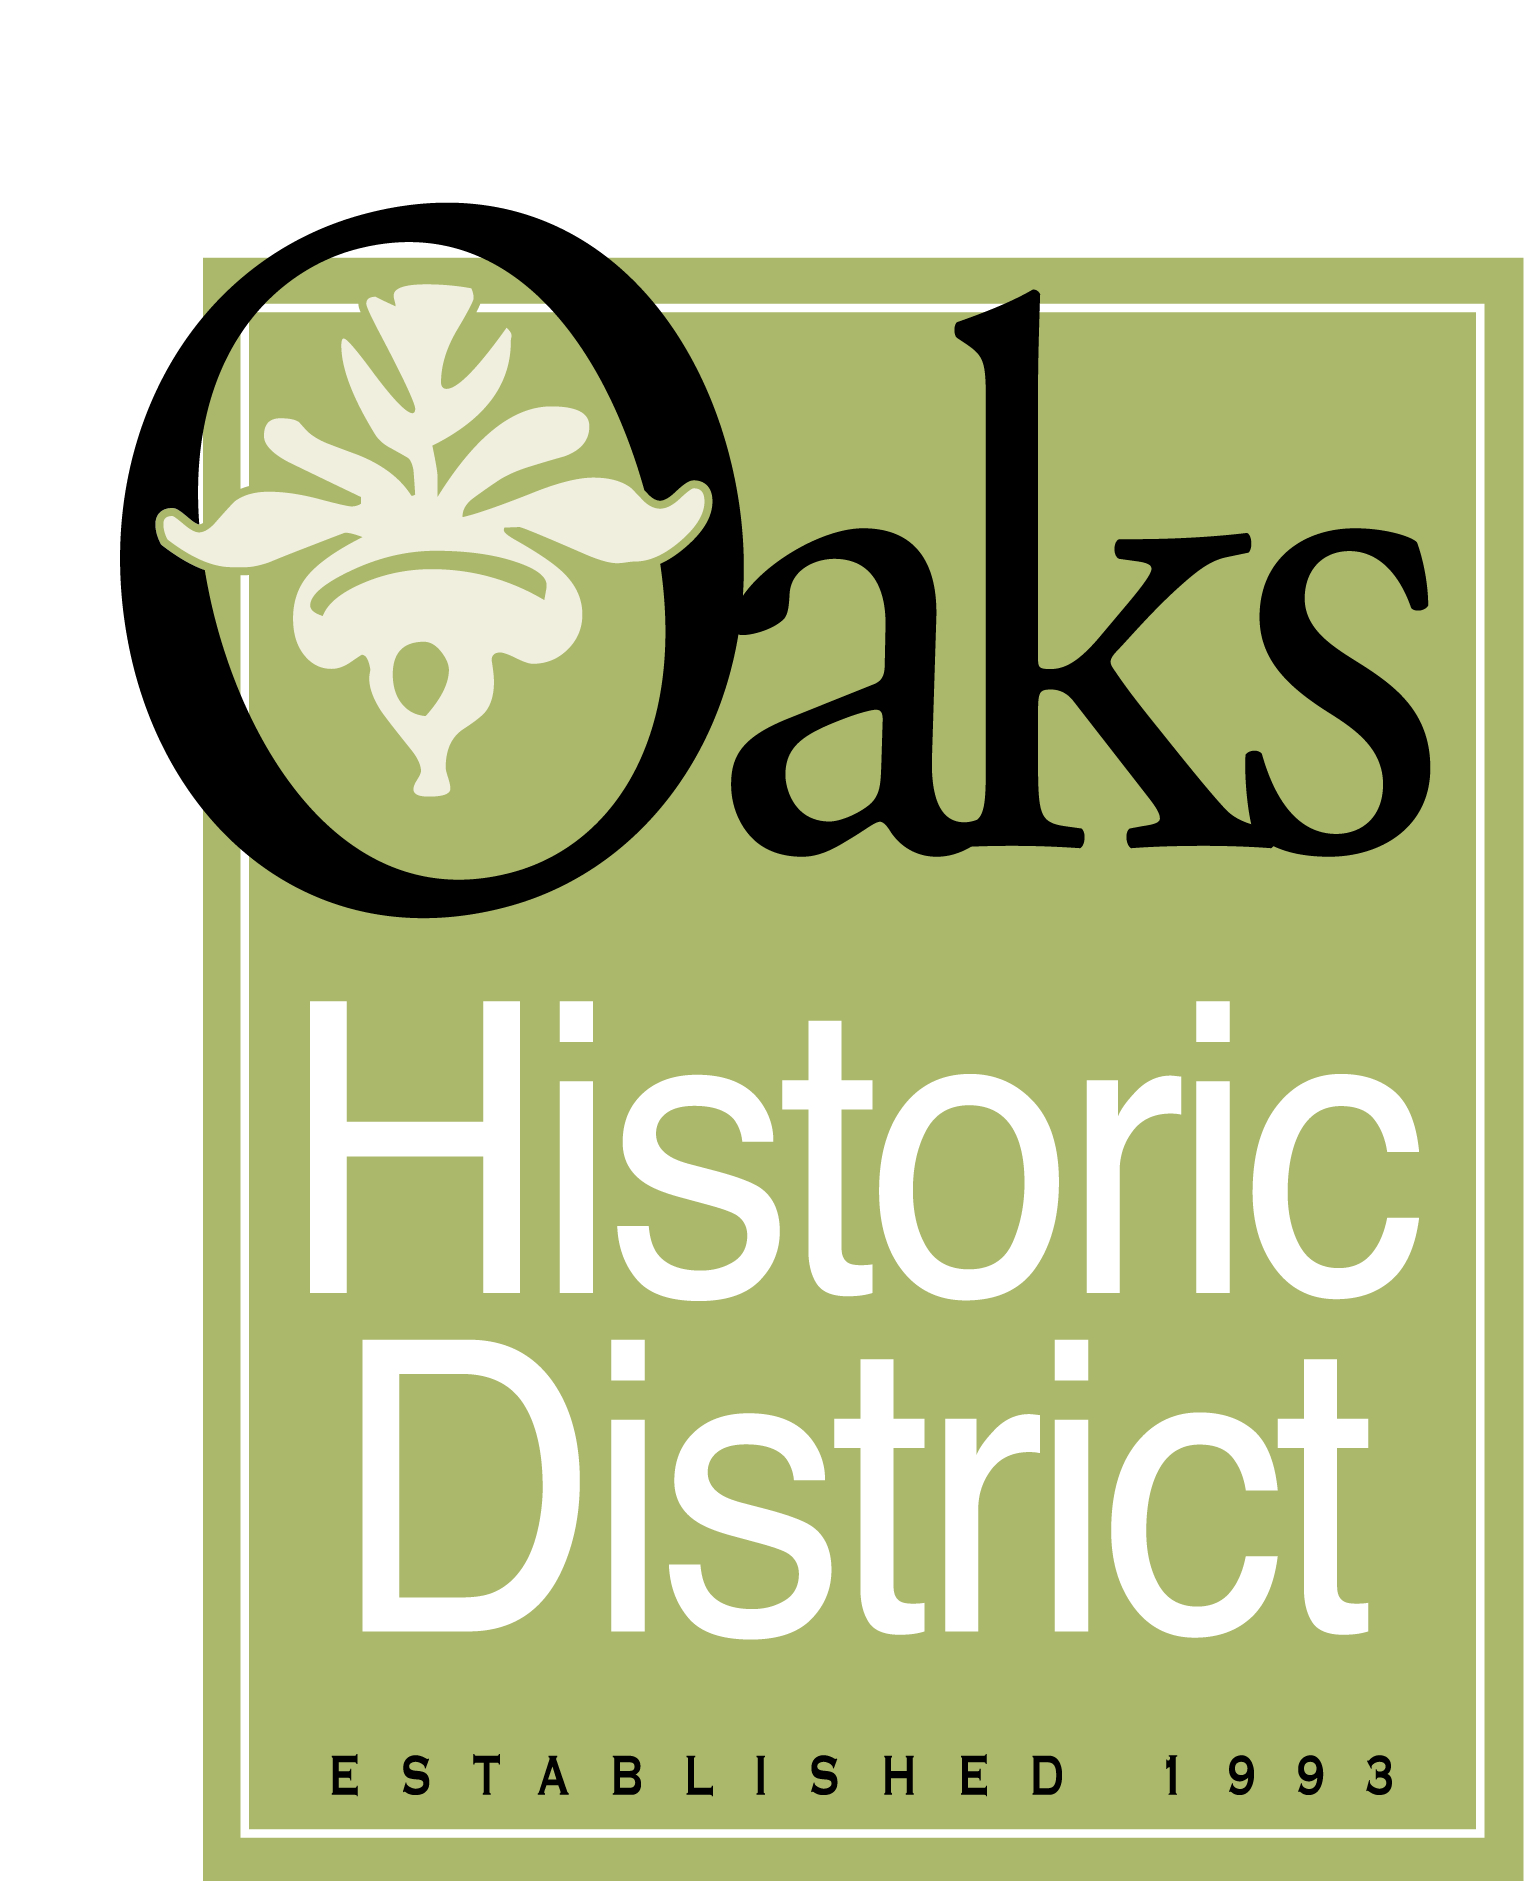 Oaks Historic District, Beaumont Preservation Bash, Moonlight and Martinis Beaumont, live jazz Southeast Texas, martinis Southeast Texas, Martini bar Southeast Texas, April events Beaumont Tx, April Calendar Beaumont Tx